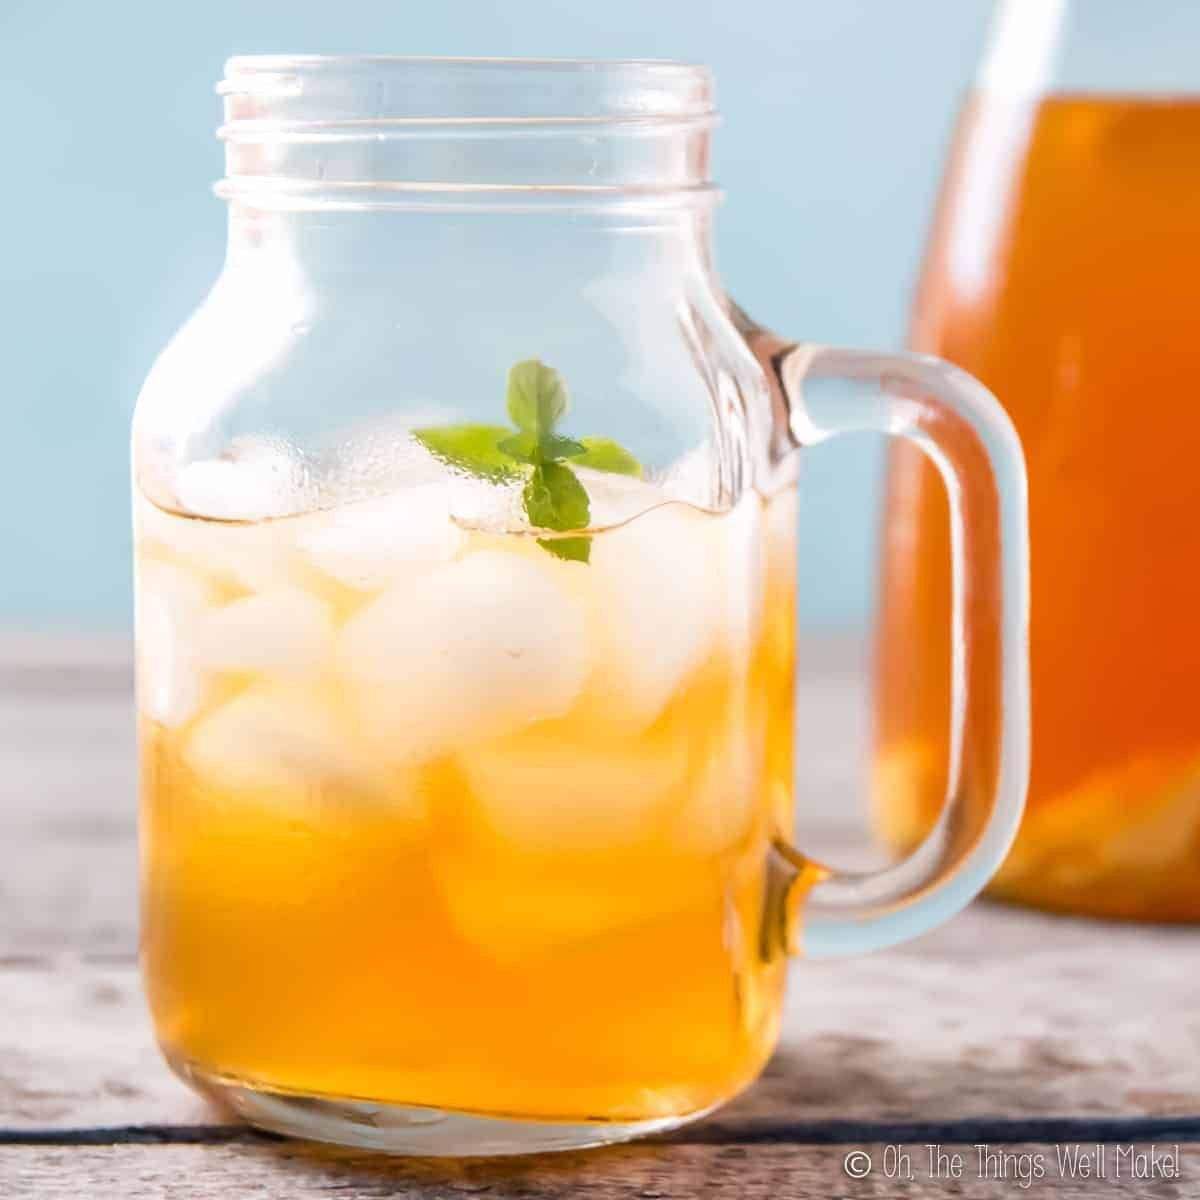 A mason jar mug filled with ice and a ginger switchel drink, garnished with a sprig of spearmint. There is a carafe of switchel in the background.